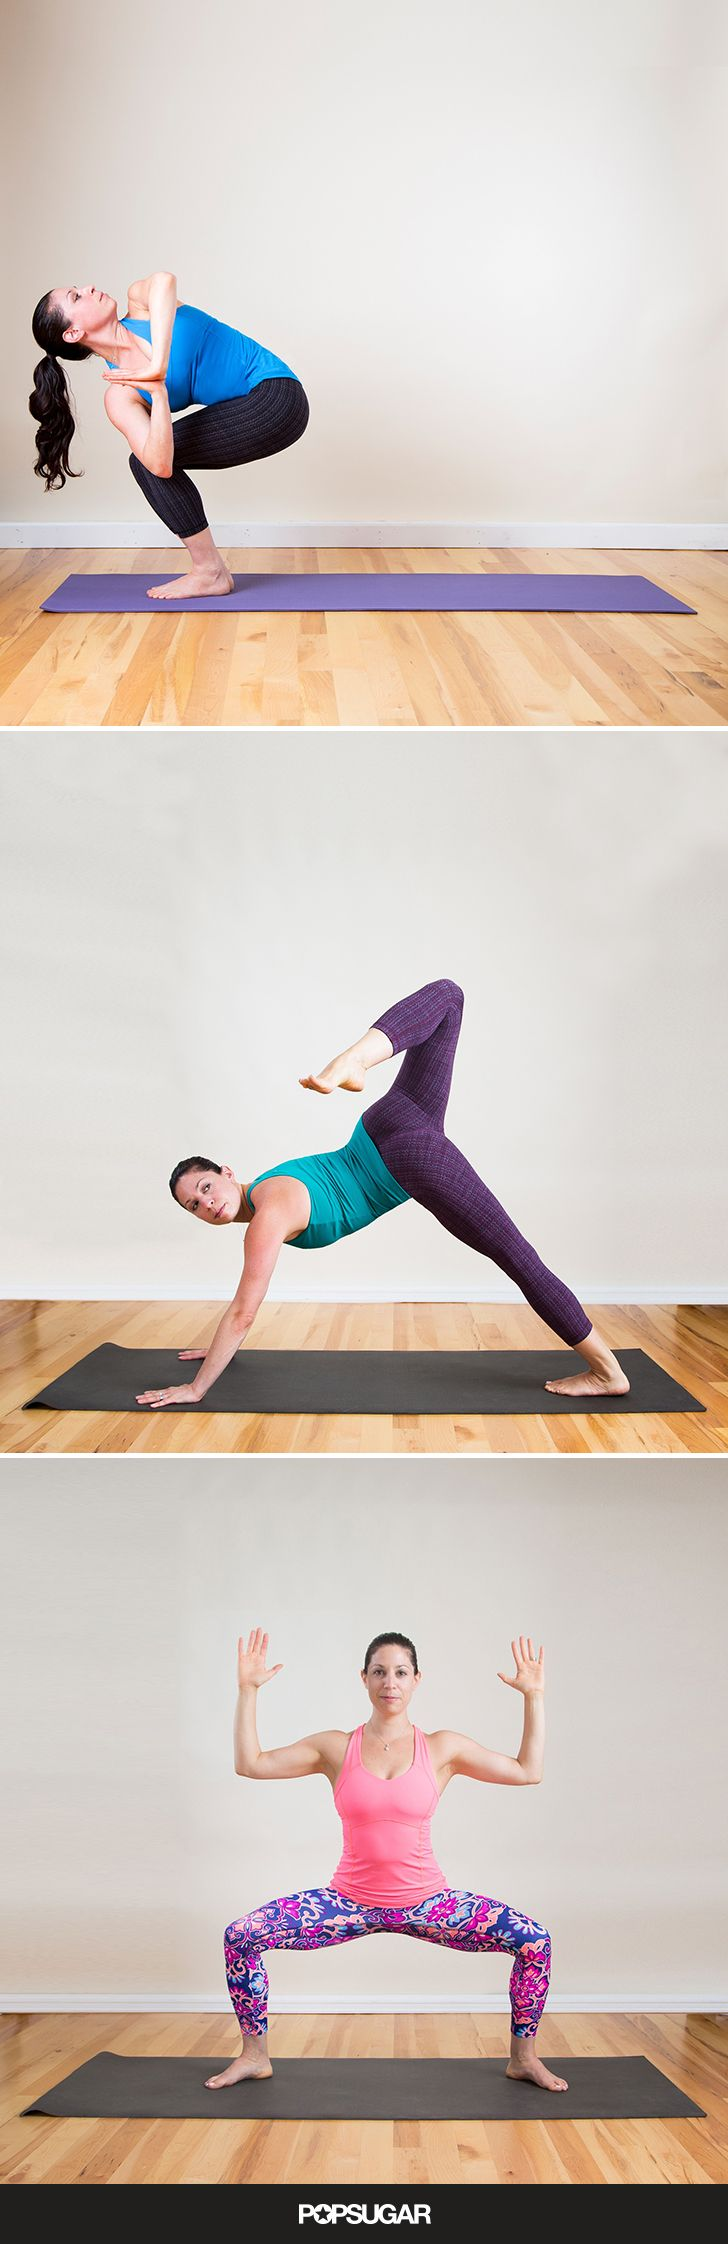 Flow through these 9 postures at home if you don't have time to hit the yoga studio for a full class.